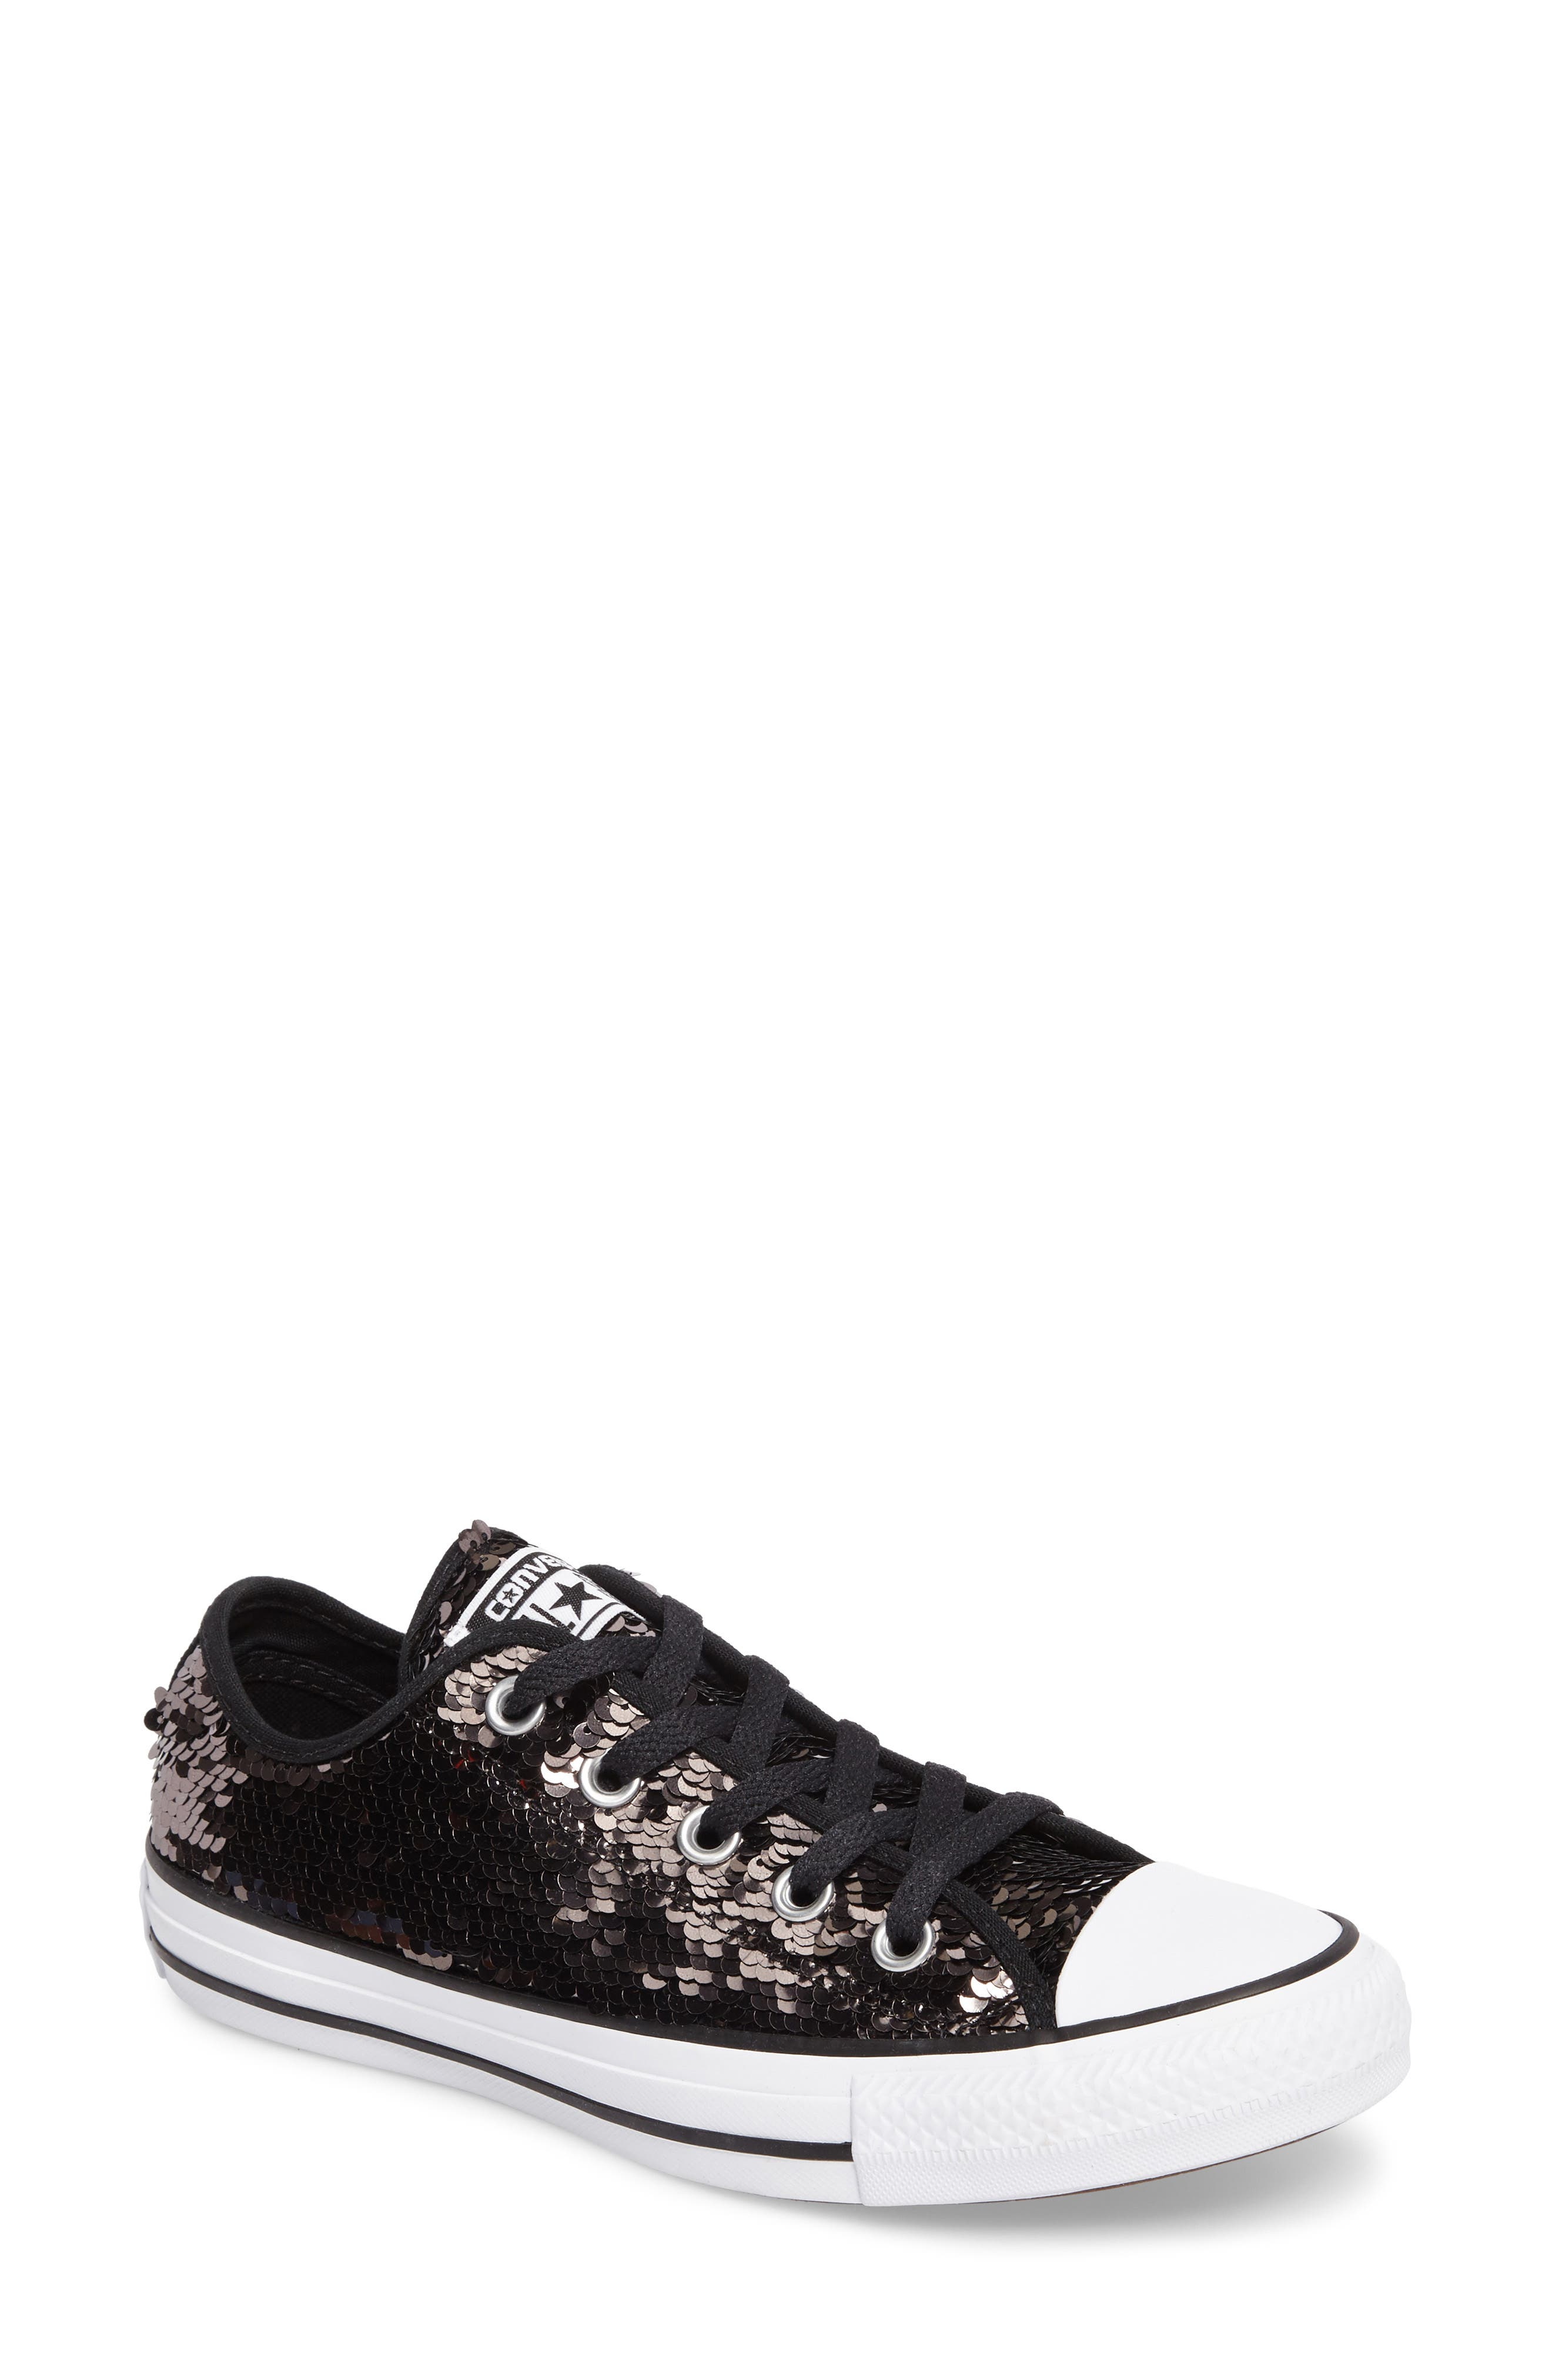 Chuck Taylor<sup>®</sup> All Star<sup>®</sup> Sequin Low Top Sneaker,                             Main thumbnail 1, color,                             Gunmetal Sequins